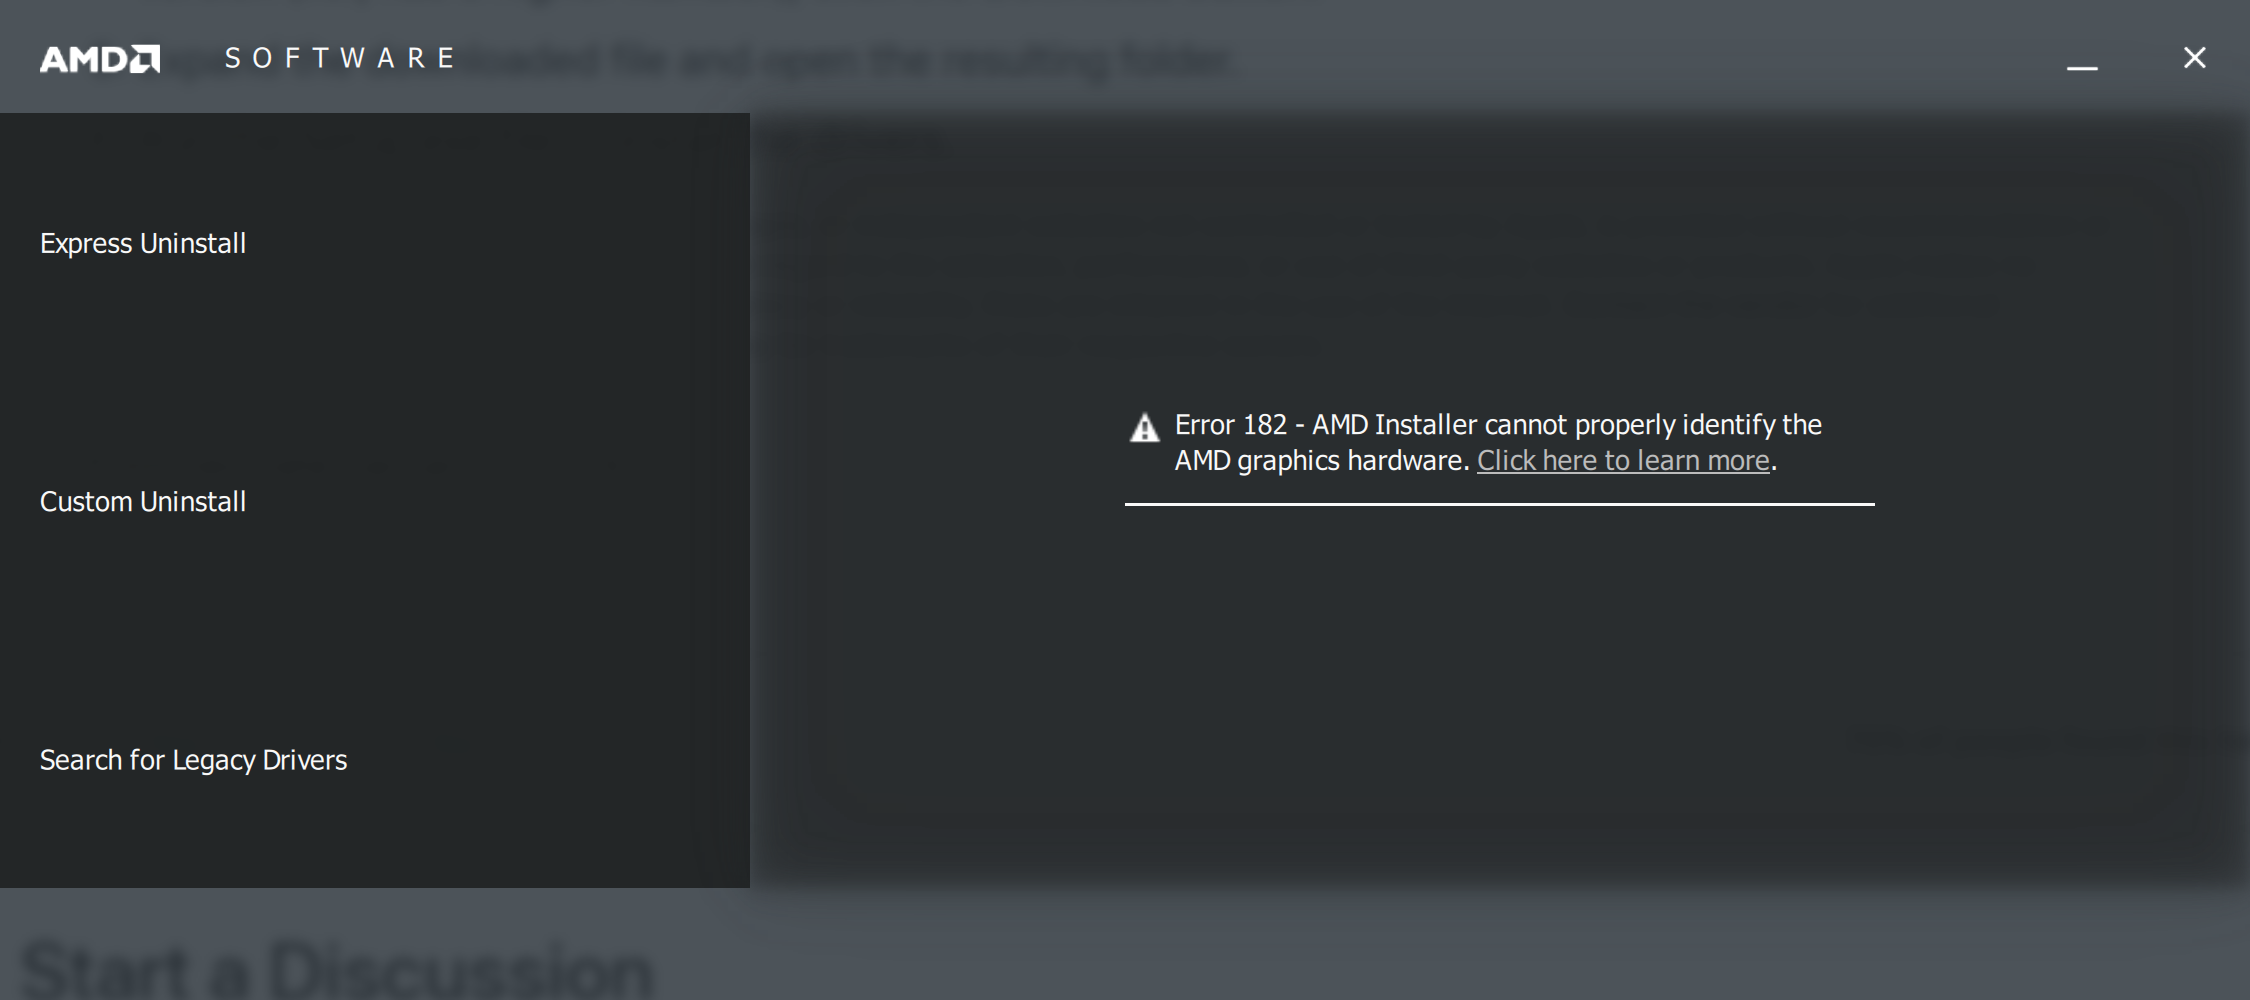 Issue After Updating AMD Graphics Driver … - Apple Community